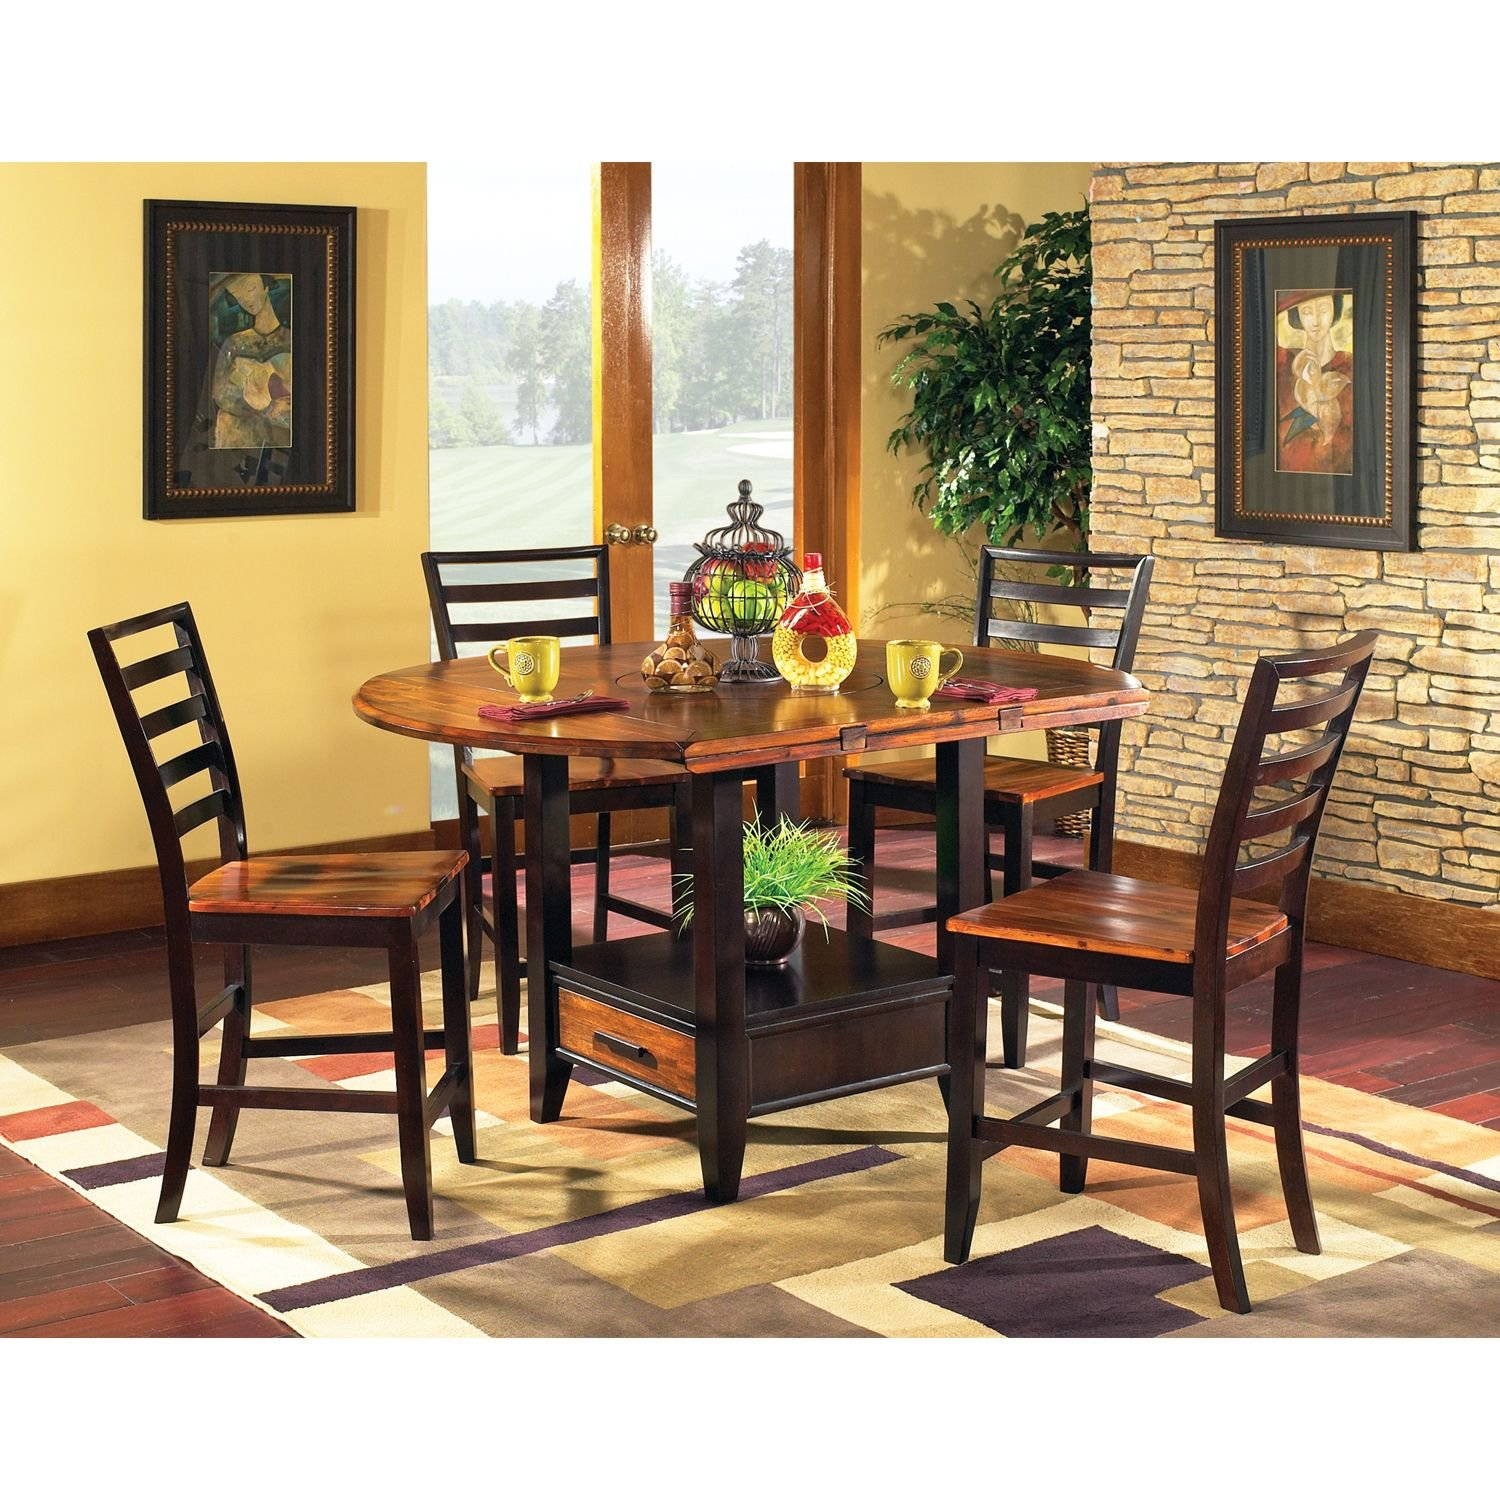 Amazon.com: Counter Height Dining Set by Lauren Wells Pierson 5 ...